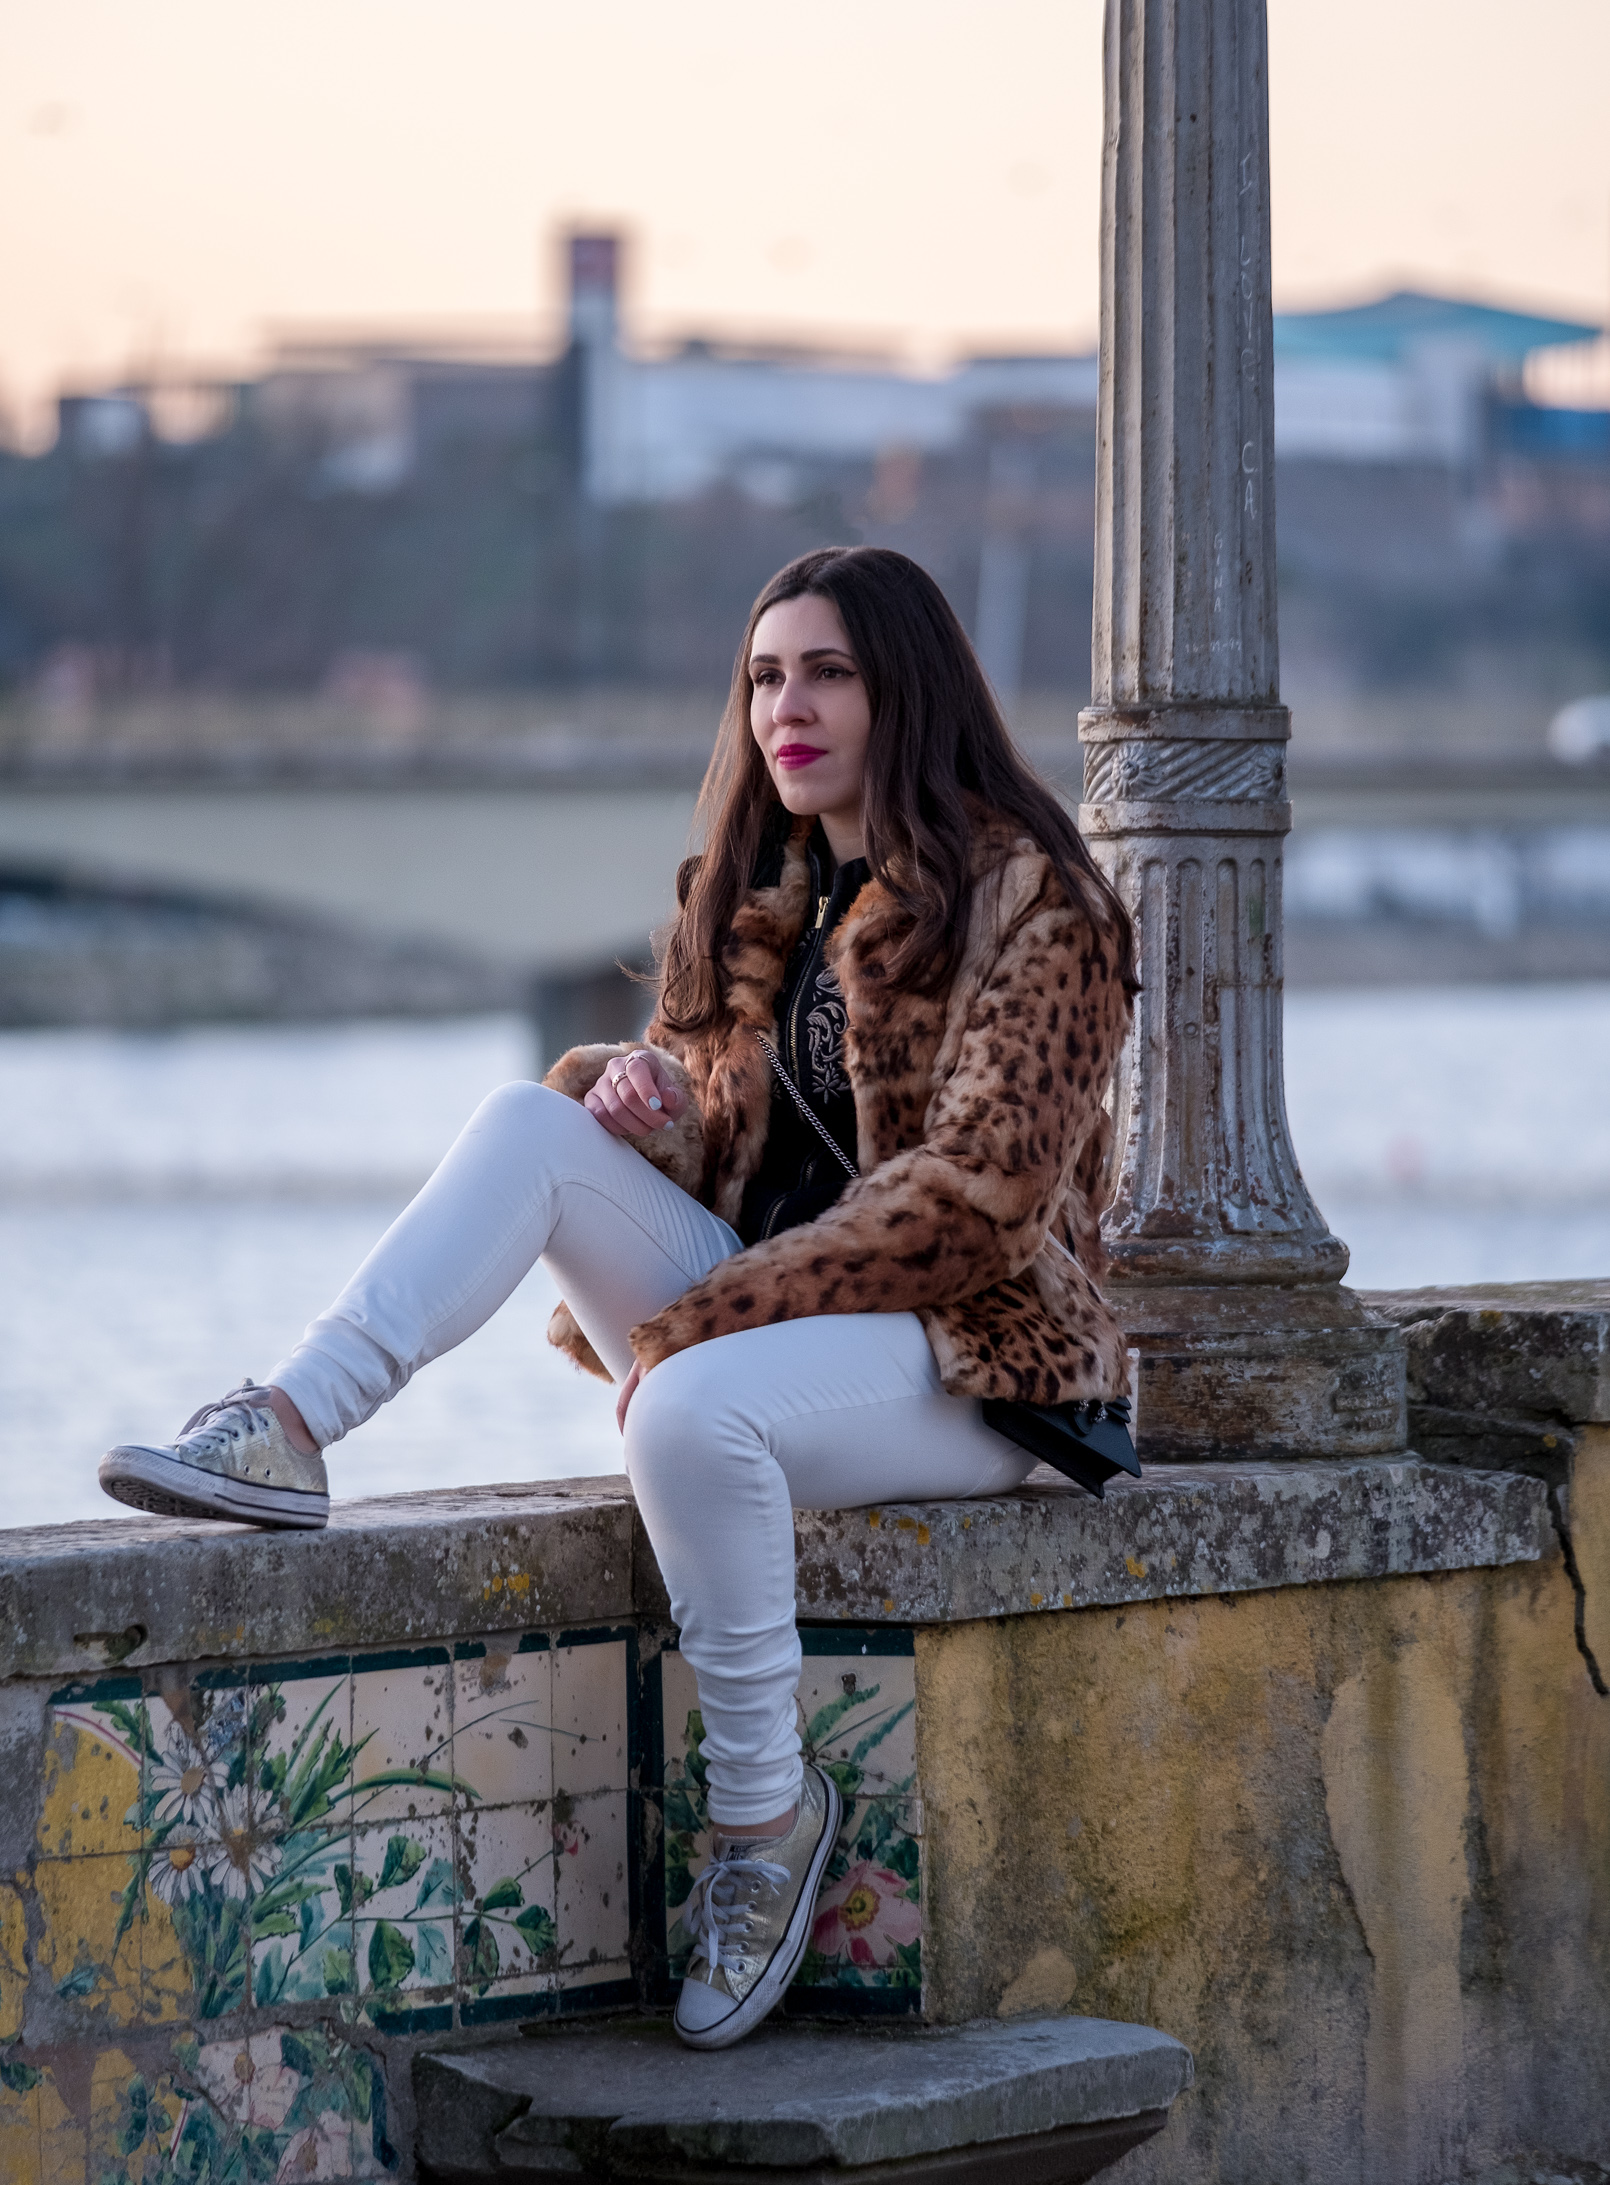 Le Fashionaire leopard fur brown black morgan coat white trousers mango gold converse all star sneakers 0372 EN leopard fur brown black morgan coat white trousers mango gold converse all star sneakers 0372 EN